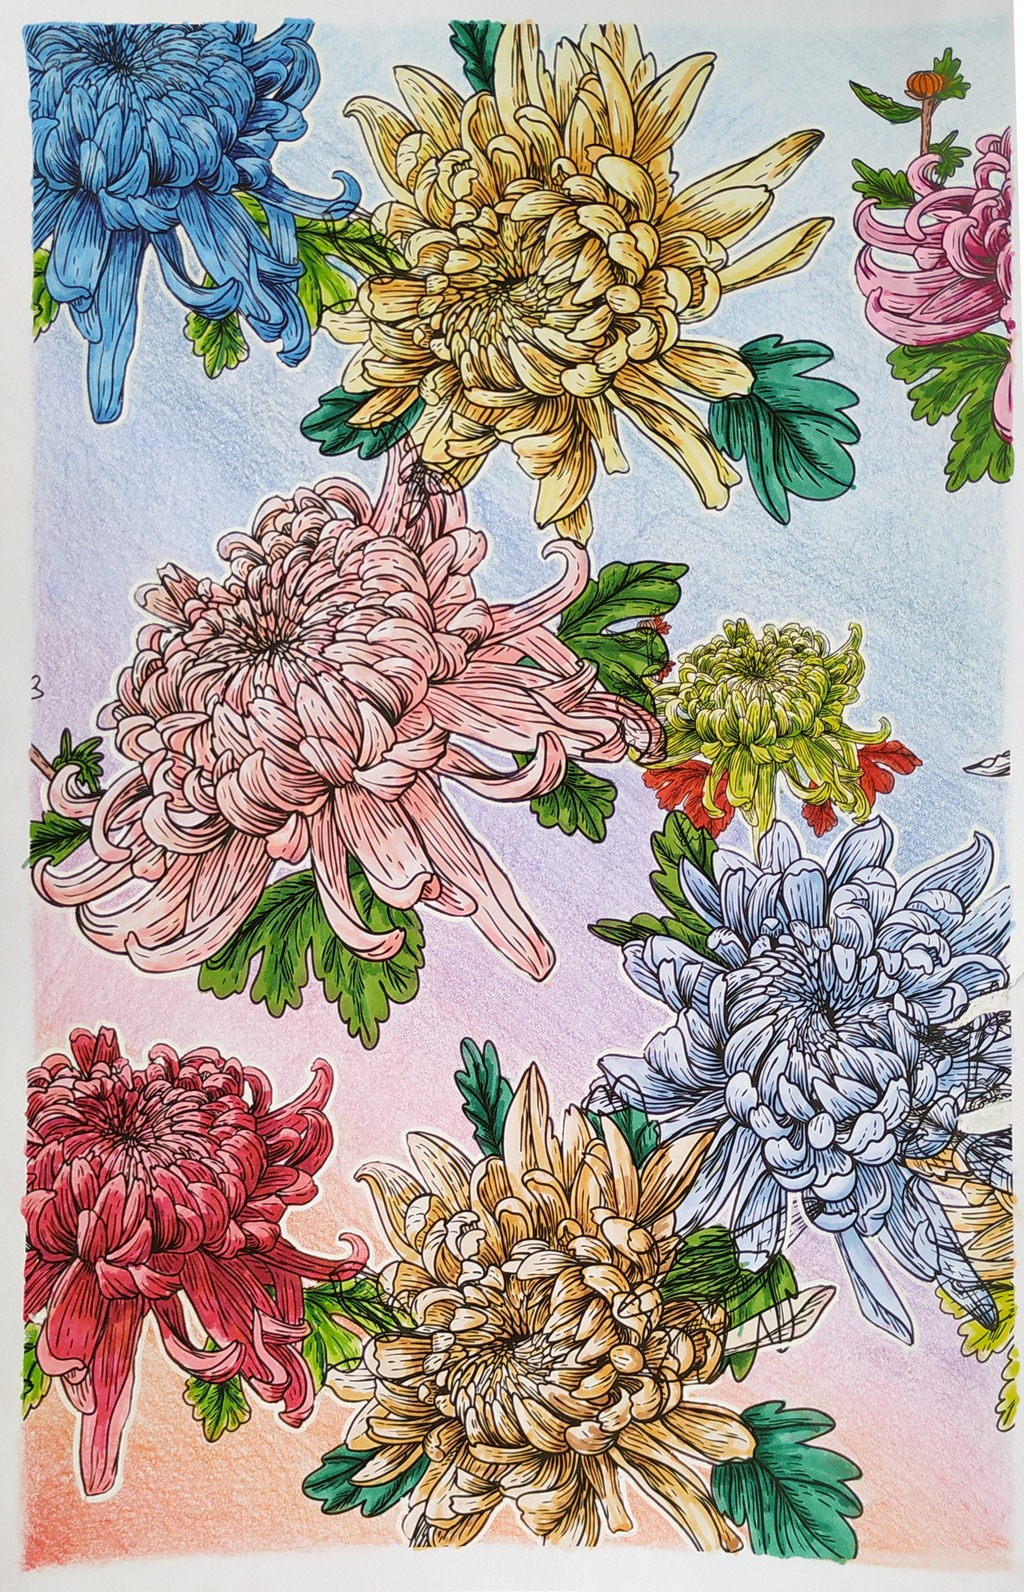 Adult coloring book - chrysanthemums